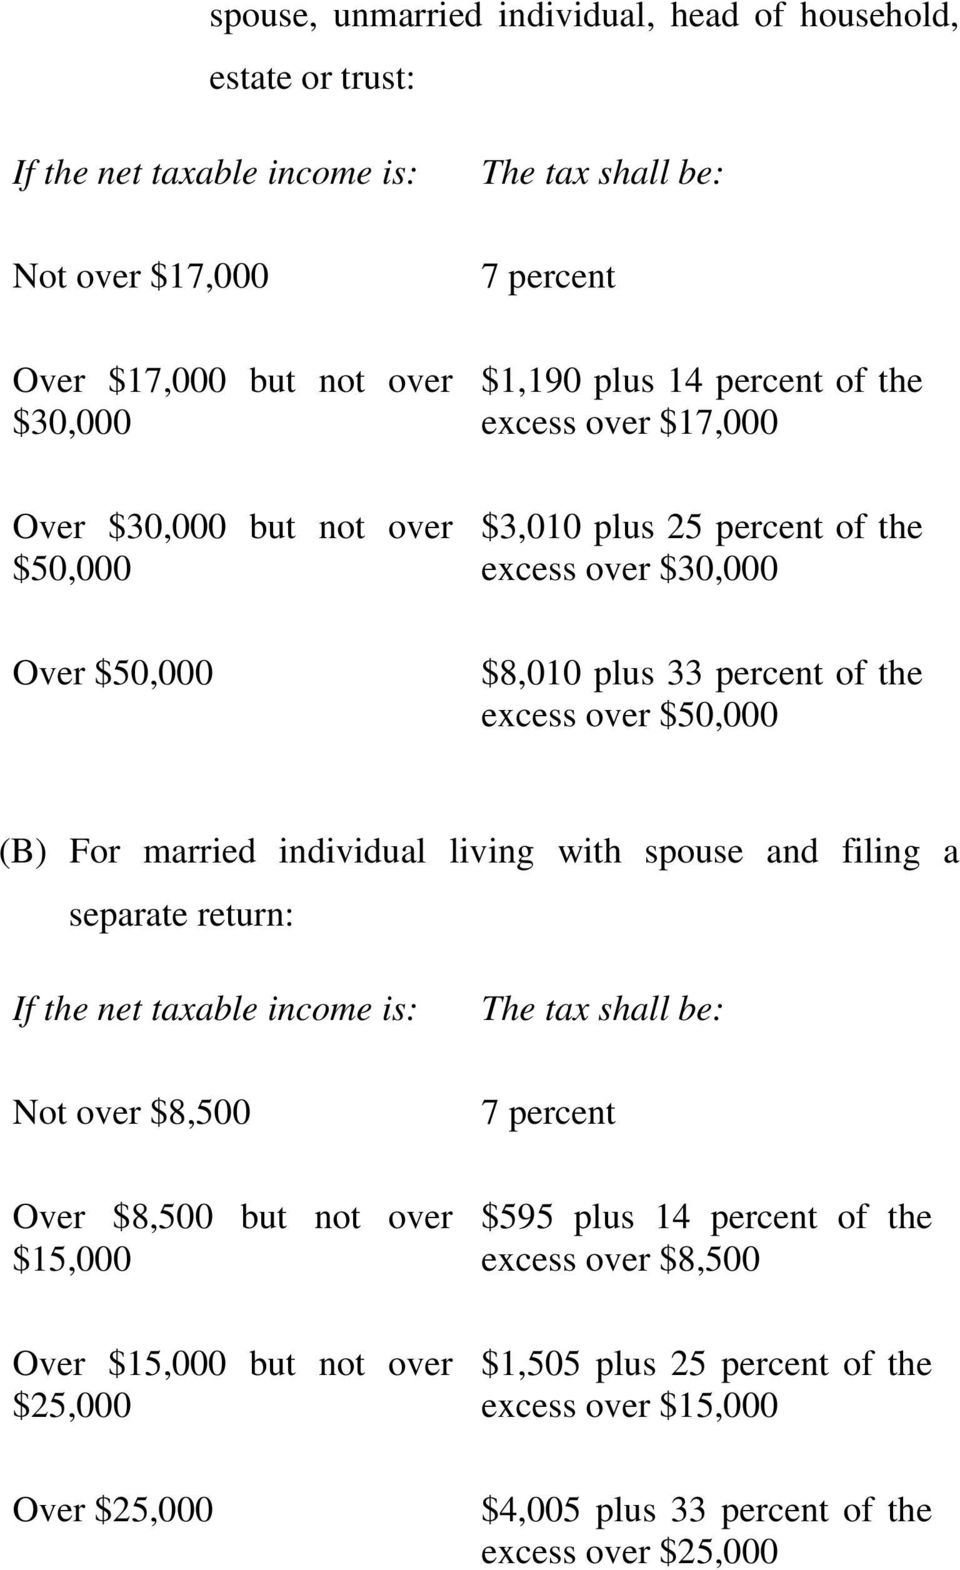 (B) For married individual living with spouse and filing a separate return: If the net taxable income is: Not over $8,500 Over $8,500 but not over $15,000 Over $15,000 but not over